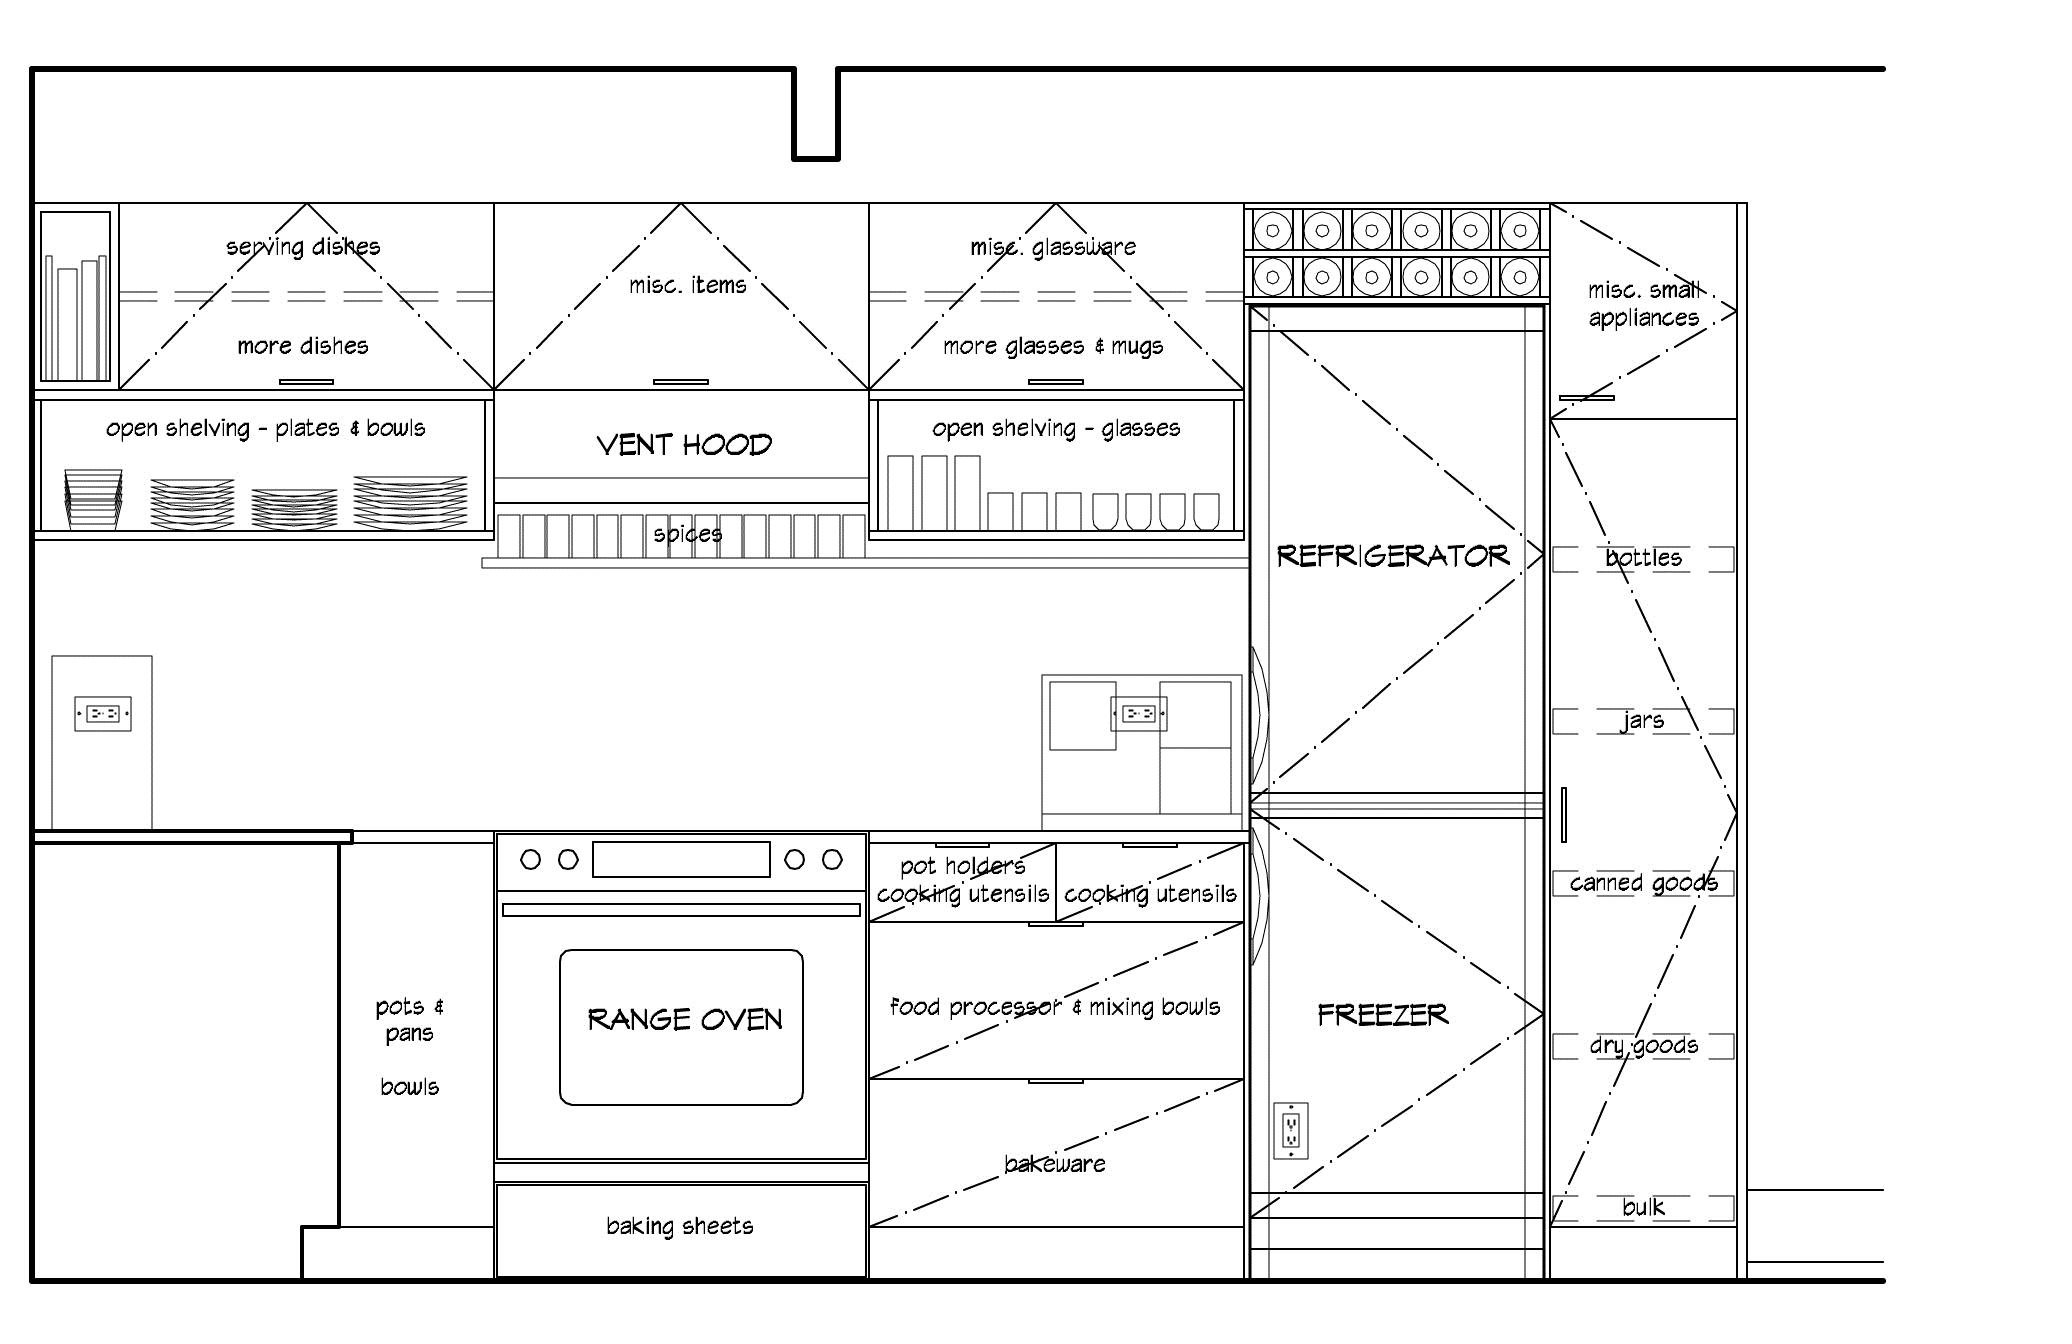 Island kitchen layout drawing - Important Questions To Ask Before Starting A Kitchen Remodel